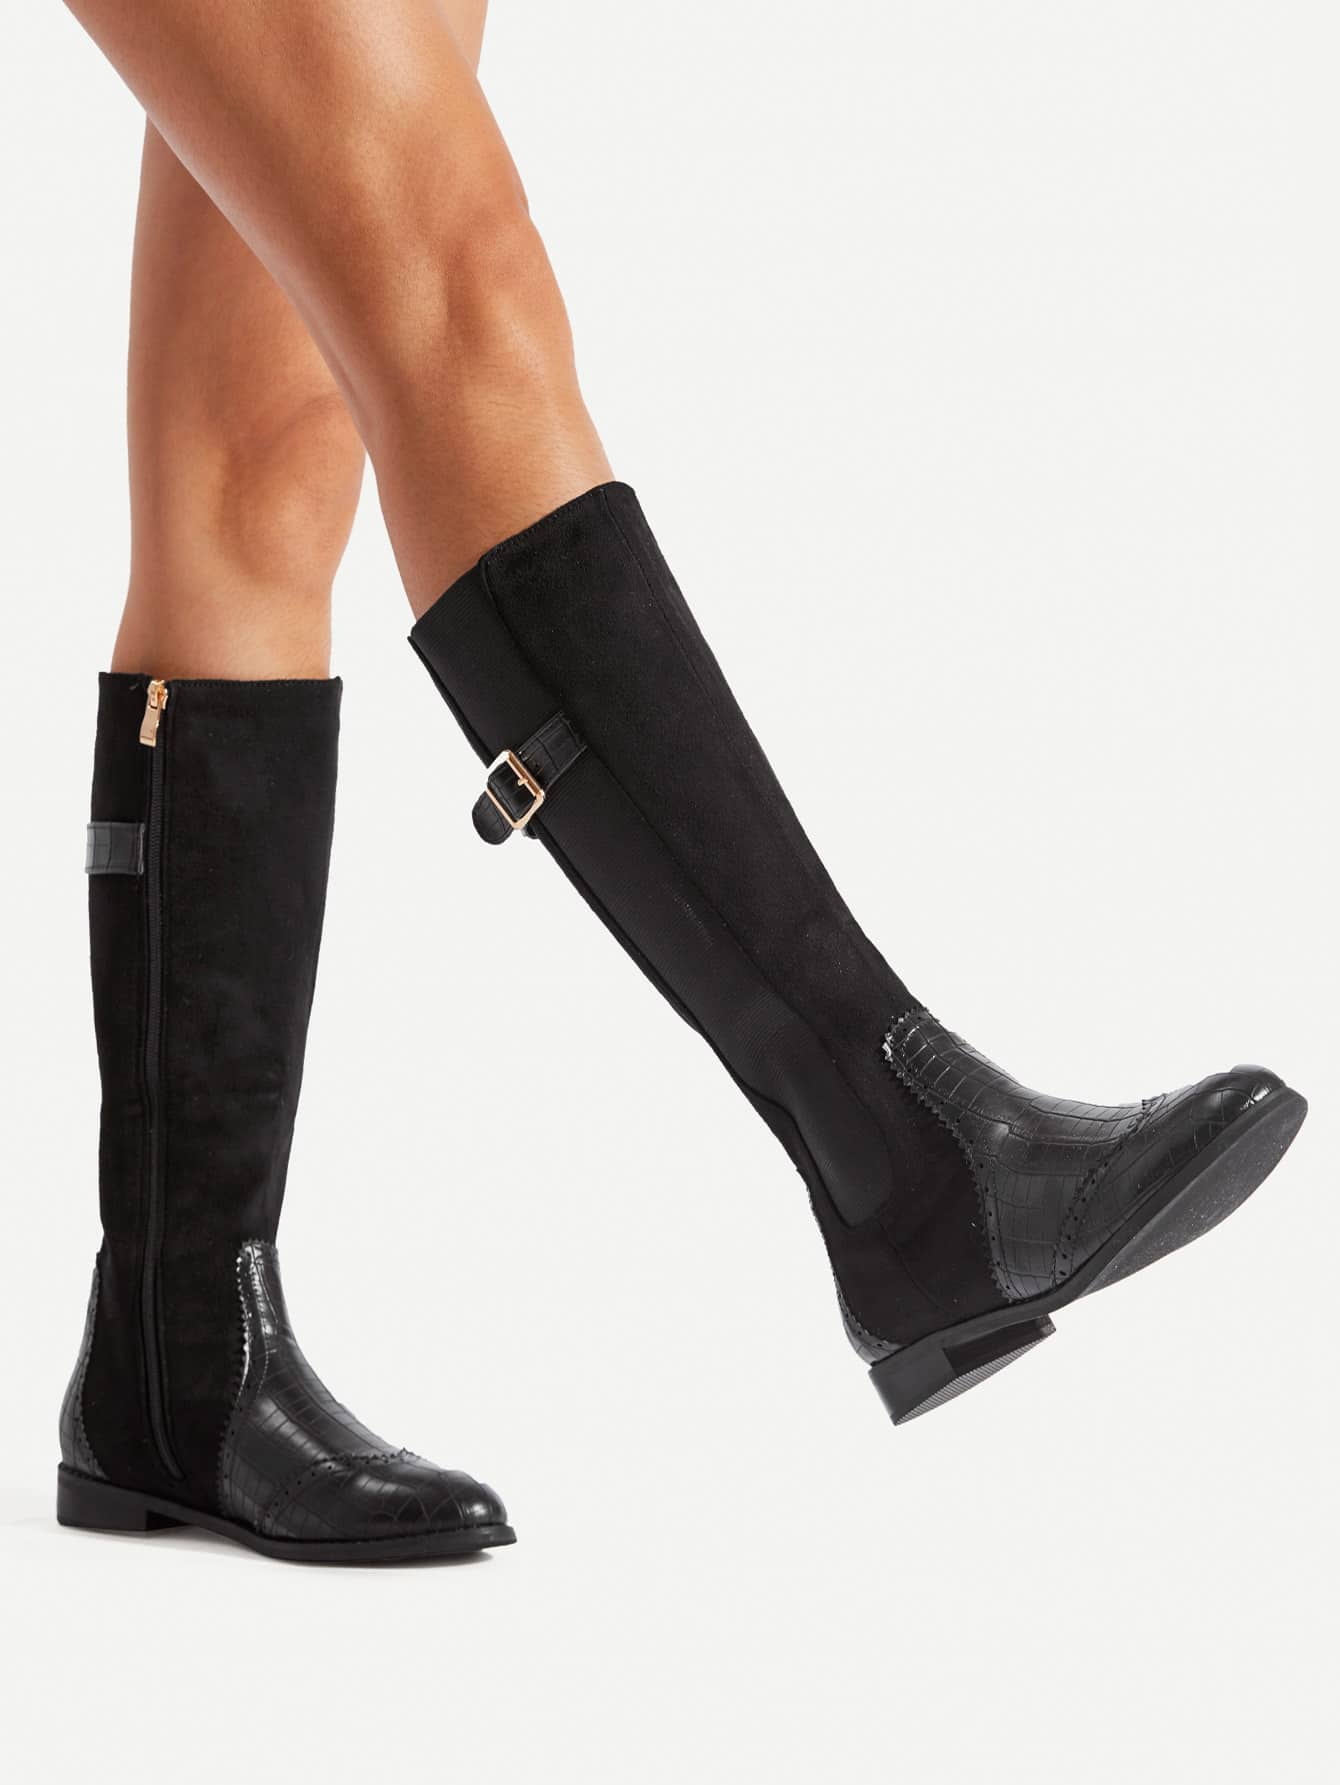 Buckle Detail Side Zipper Mid Calf Boots double buckle cross straps mid calf boots